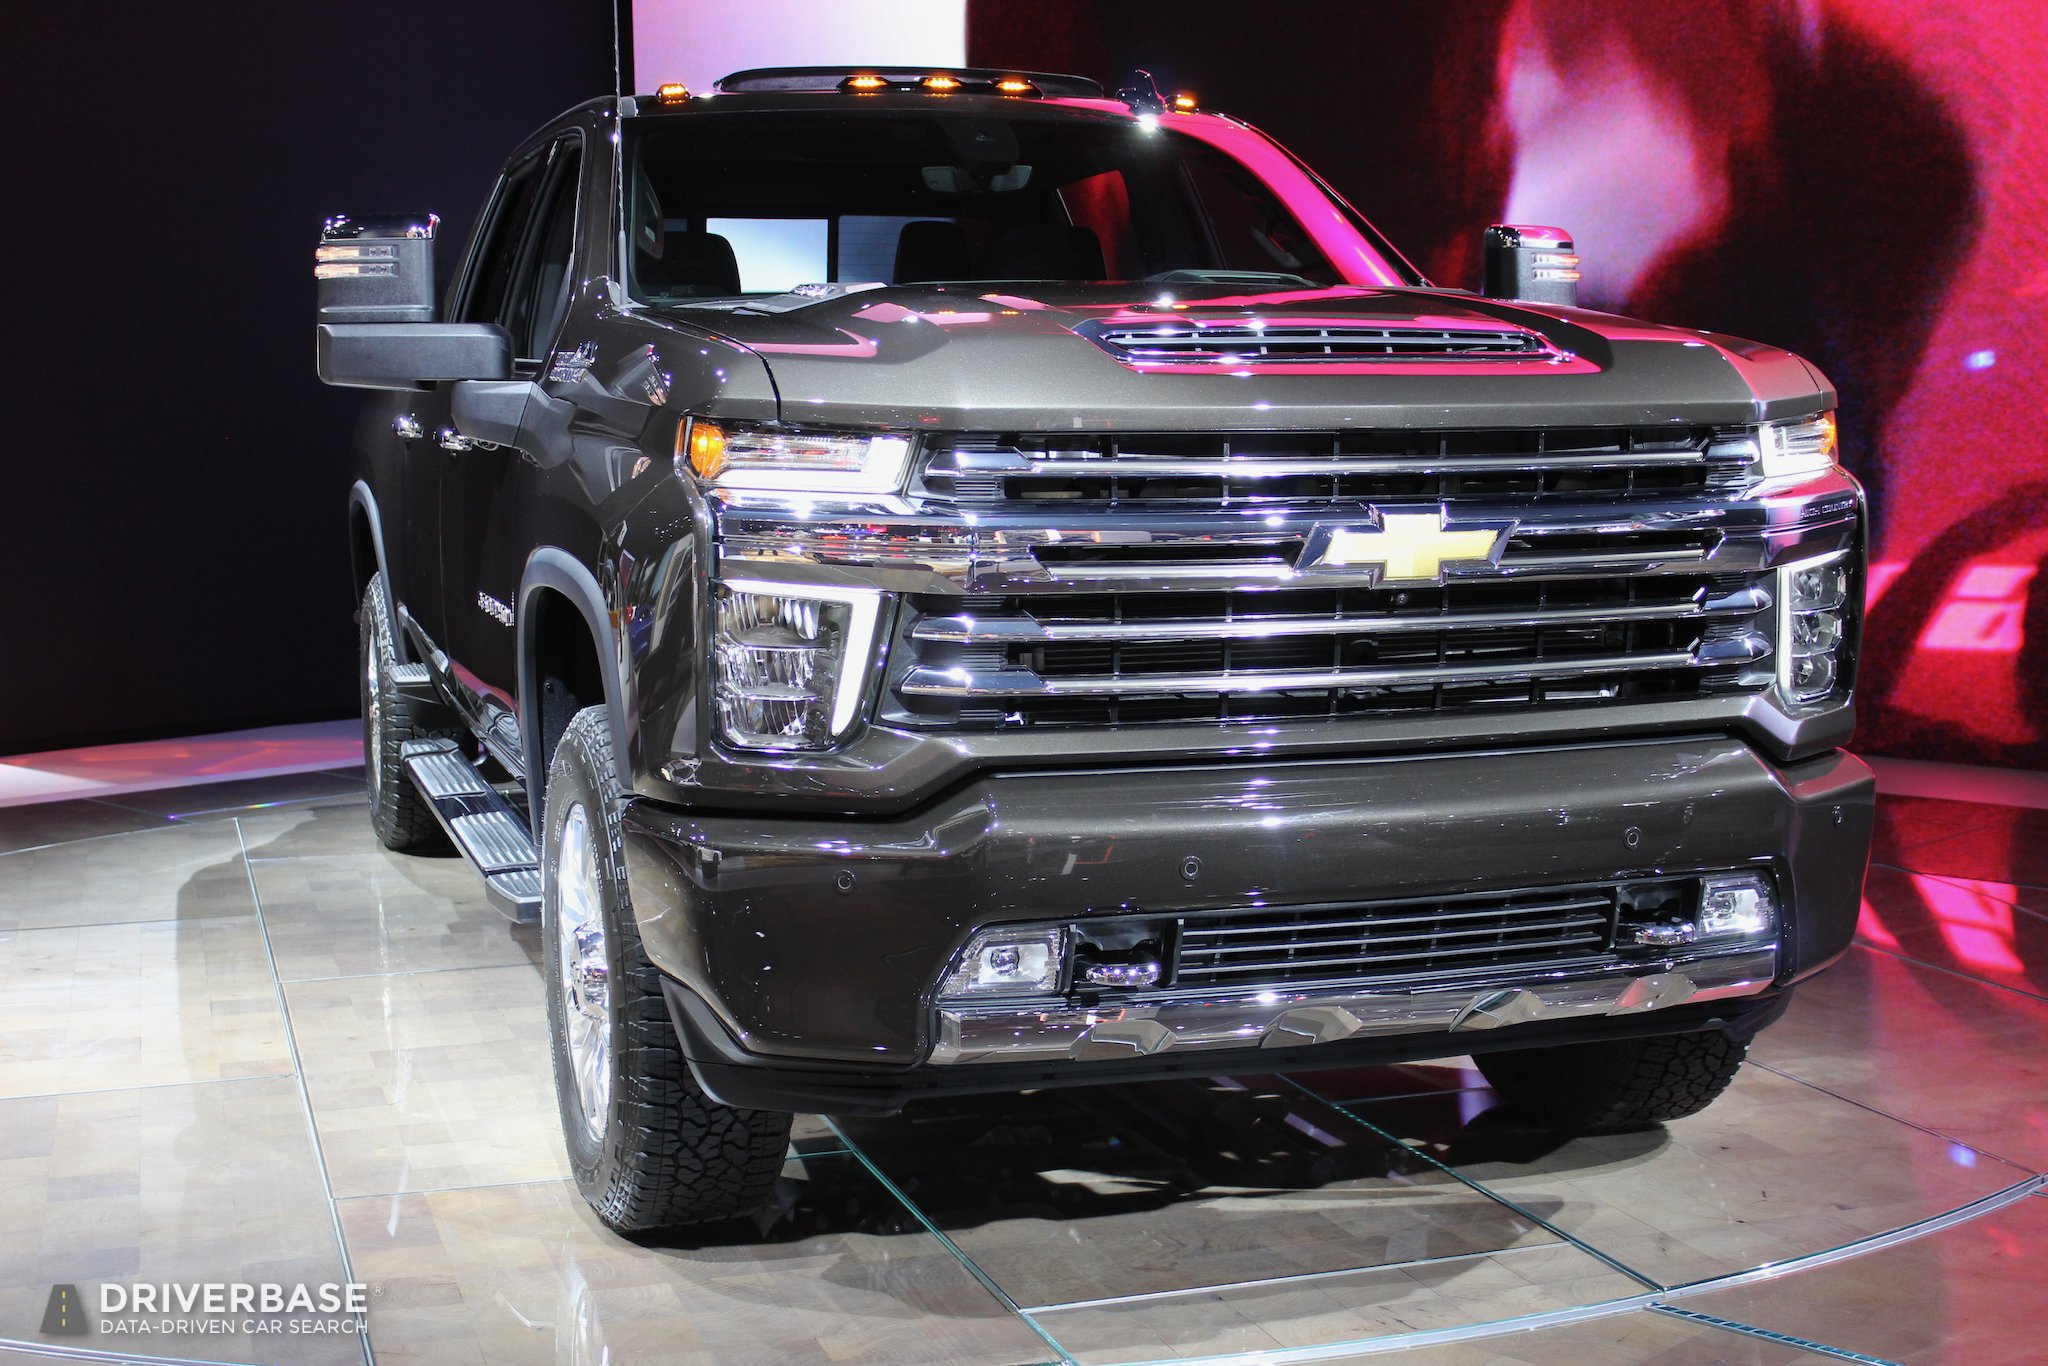 2020 Chevrolet Silverado 2500 HD High Country Truck at the 2019 New York Auto Show – Driverbase